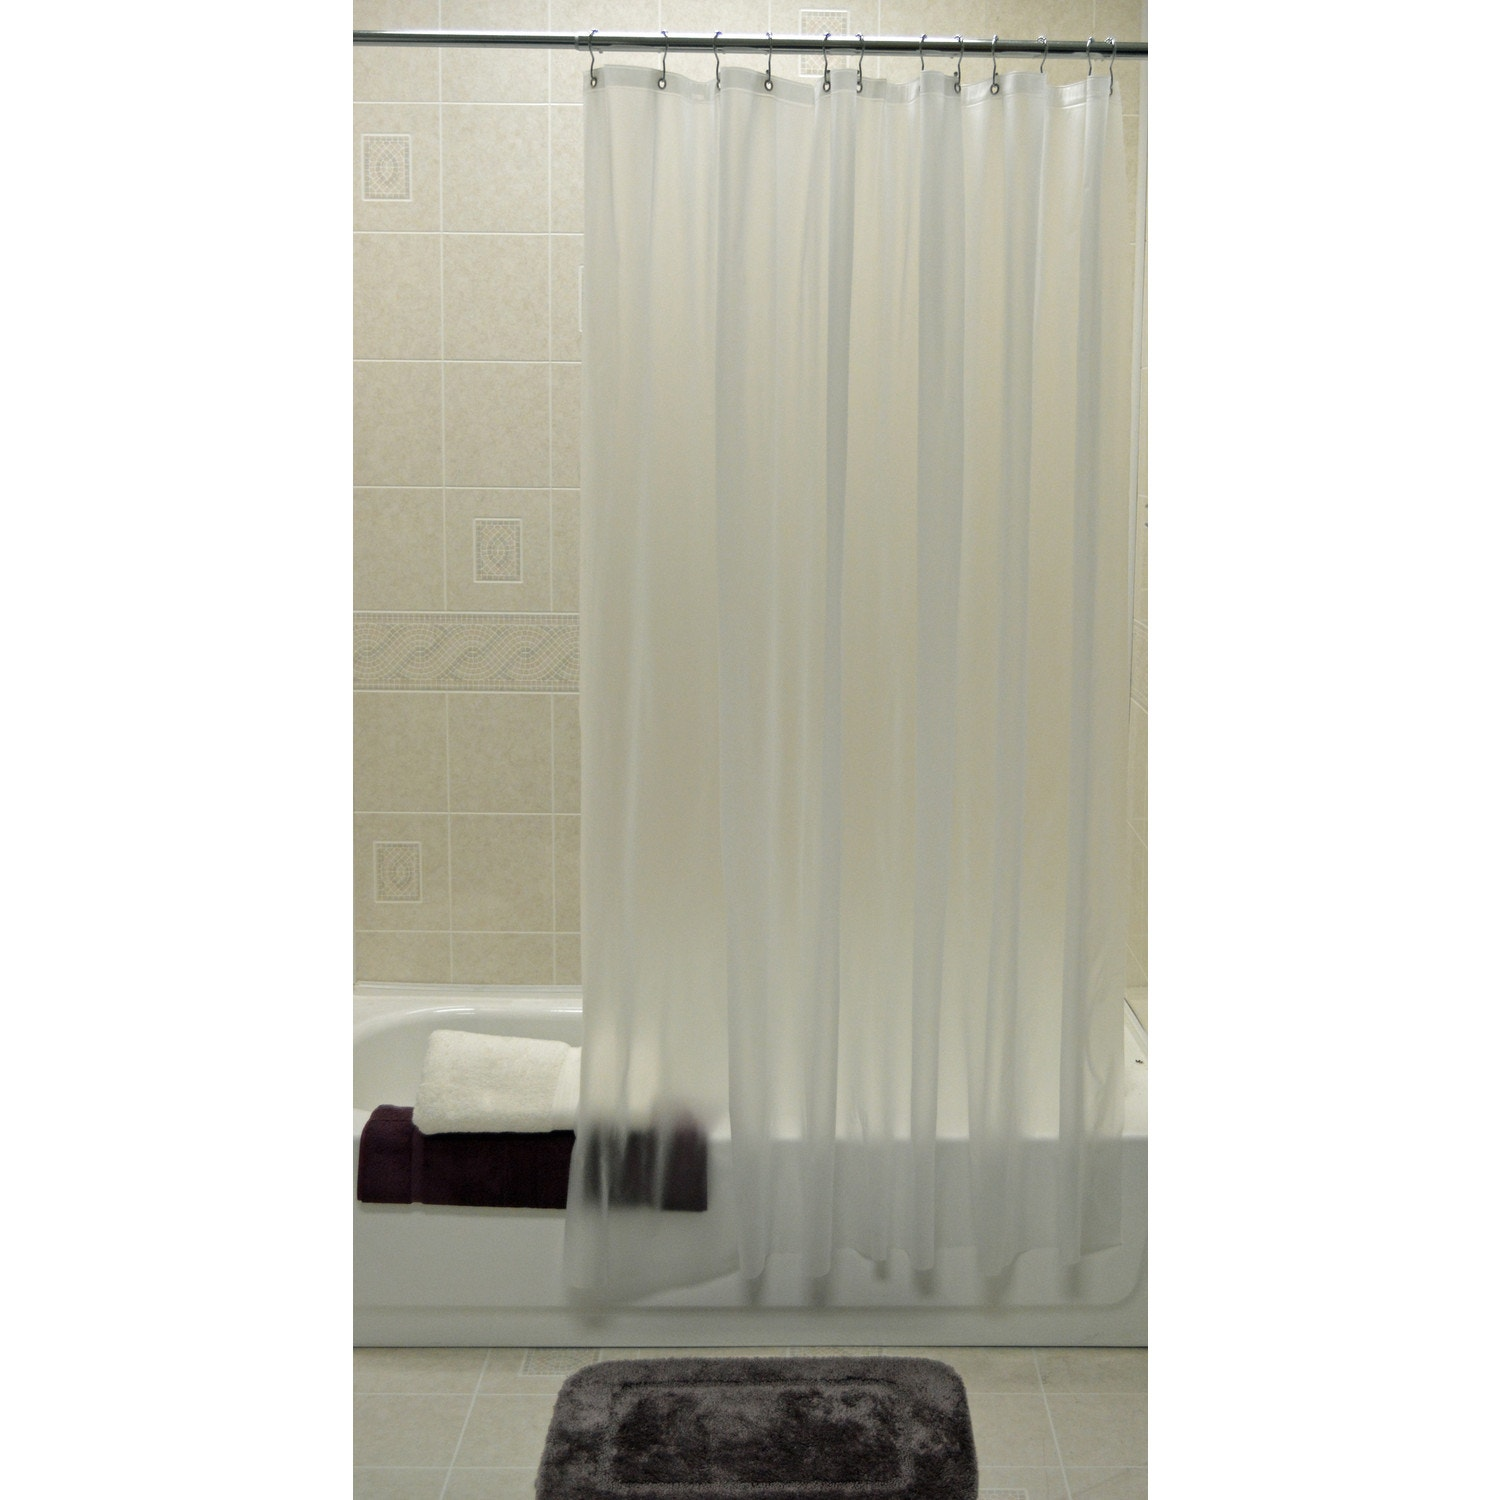 Picture of: Shower Curtain Liner 72 X 72 Frost Clear Hooked Vinyl Nylon Shower Curtains Shower Curtains Bed And Bath Linens Open Catalog American Hotel Site